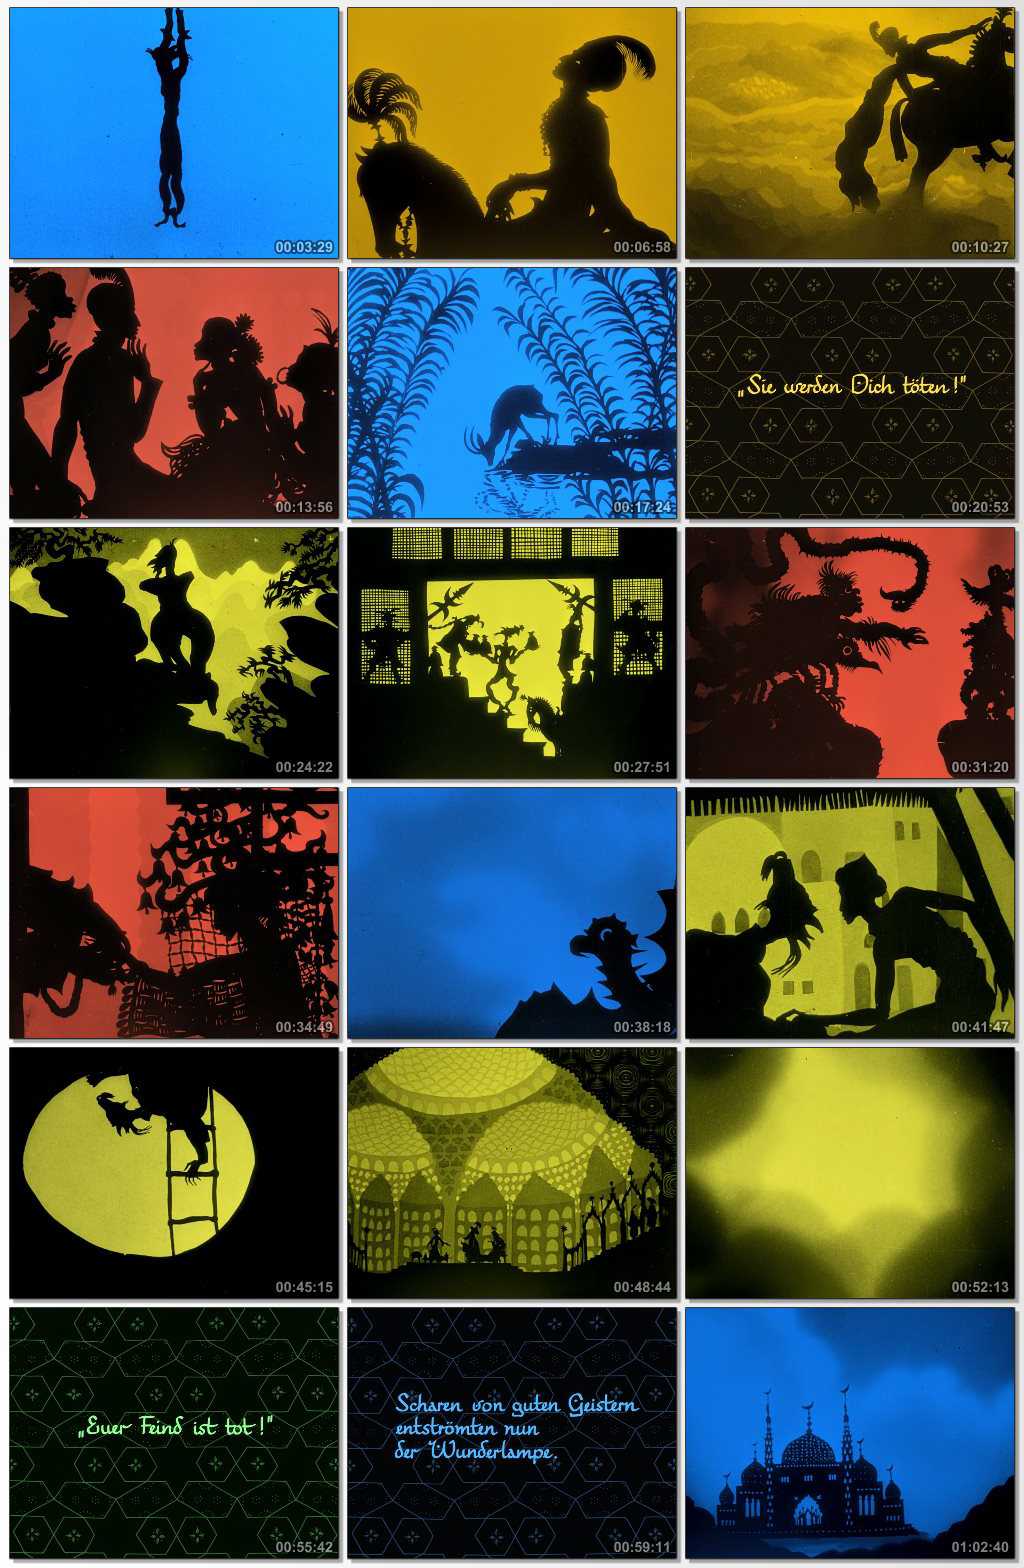 The.Adventures.Of.Prince.Achmed.1926.720p.BluRay.www.Download.ir.mkv_thumbs_[2014.11.16_17.03.52]